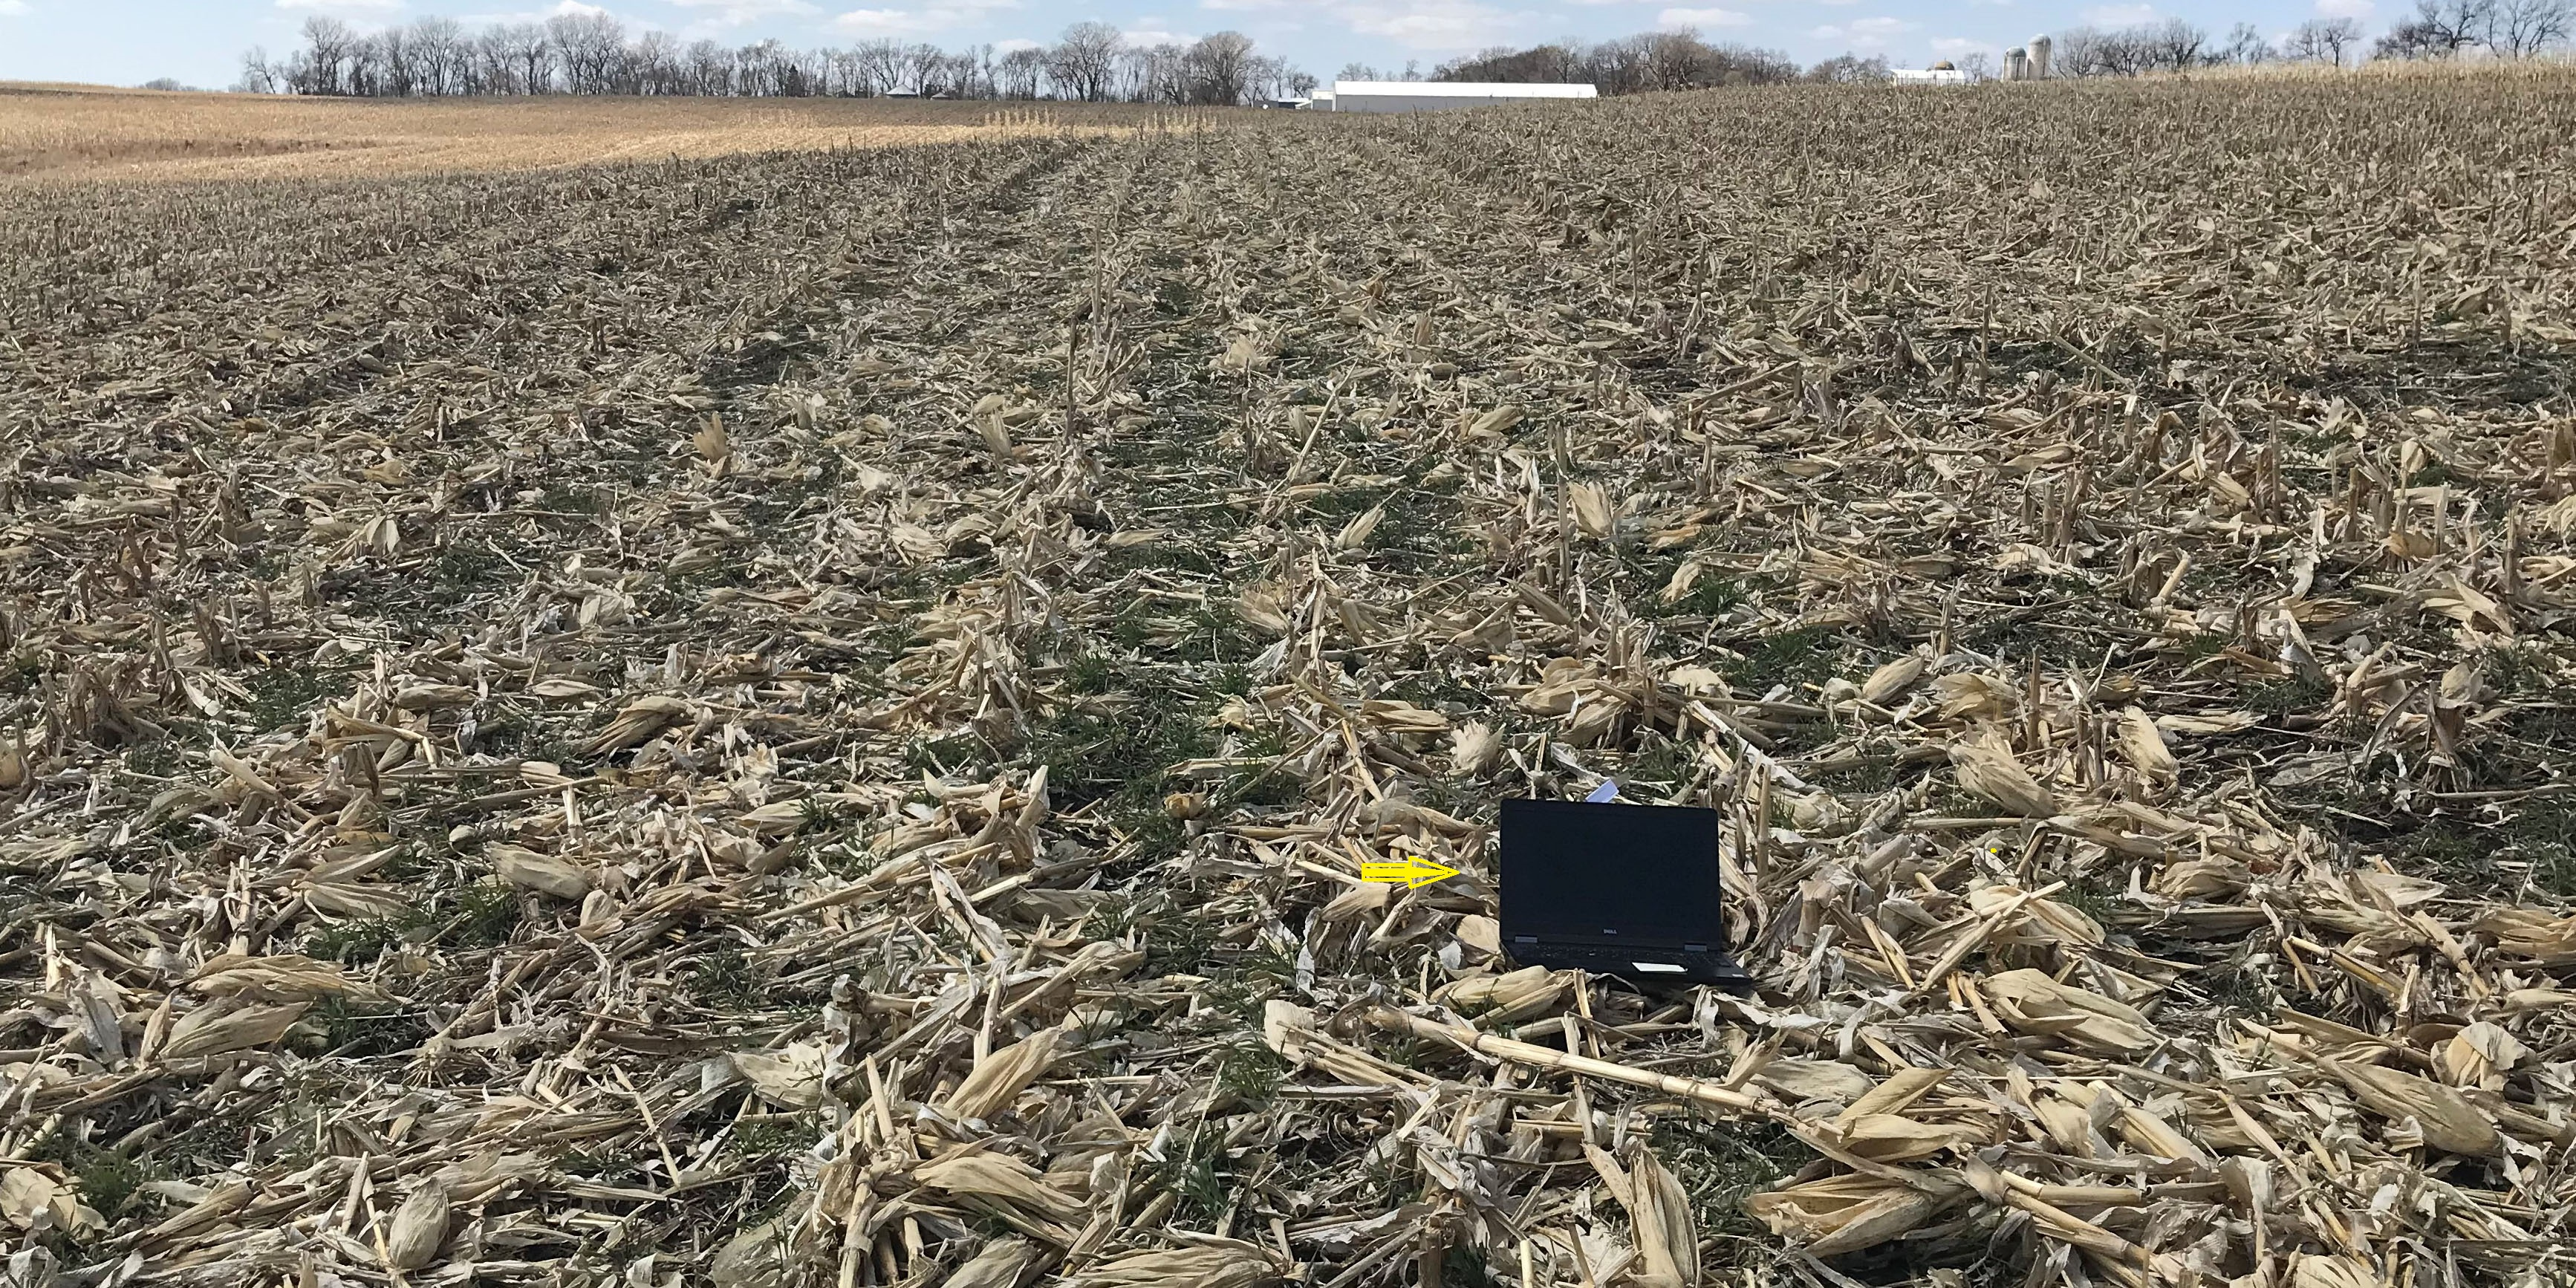 SD team looks remotely at cover crop field web with arrow 2